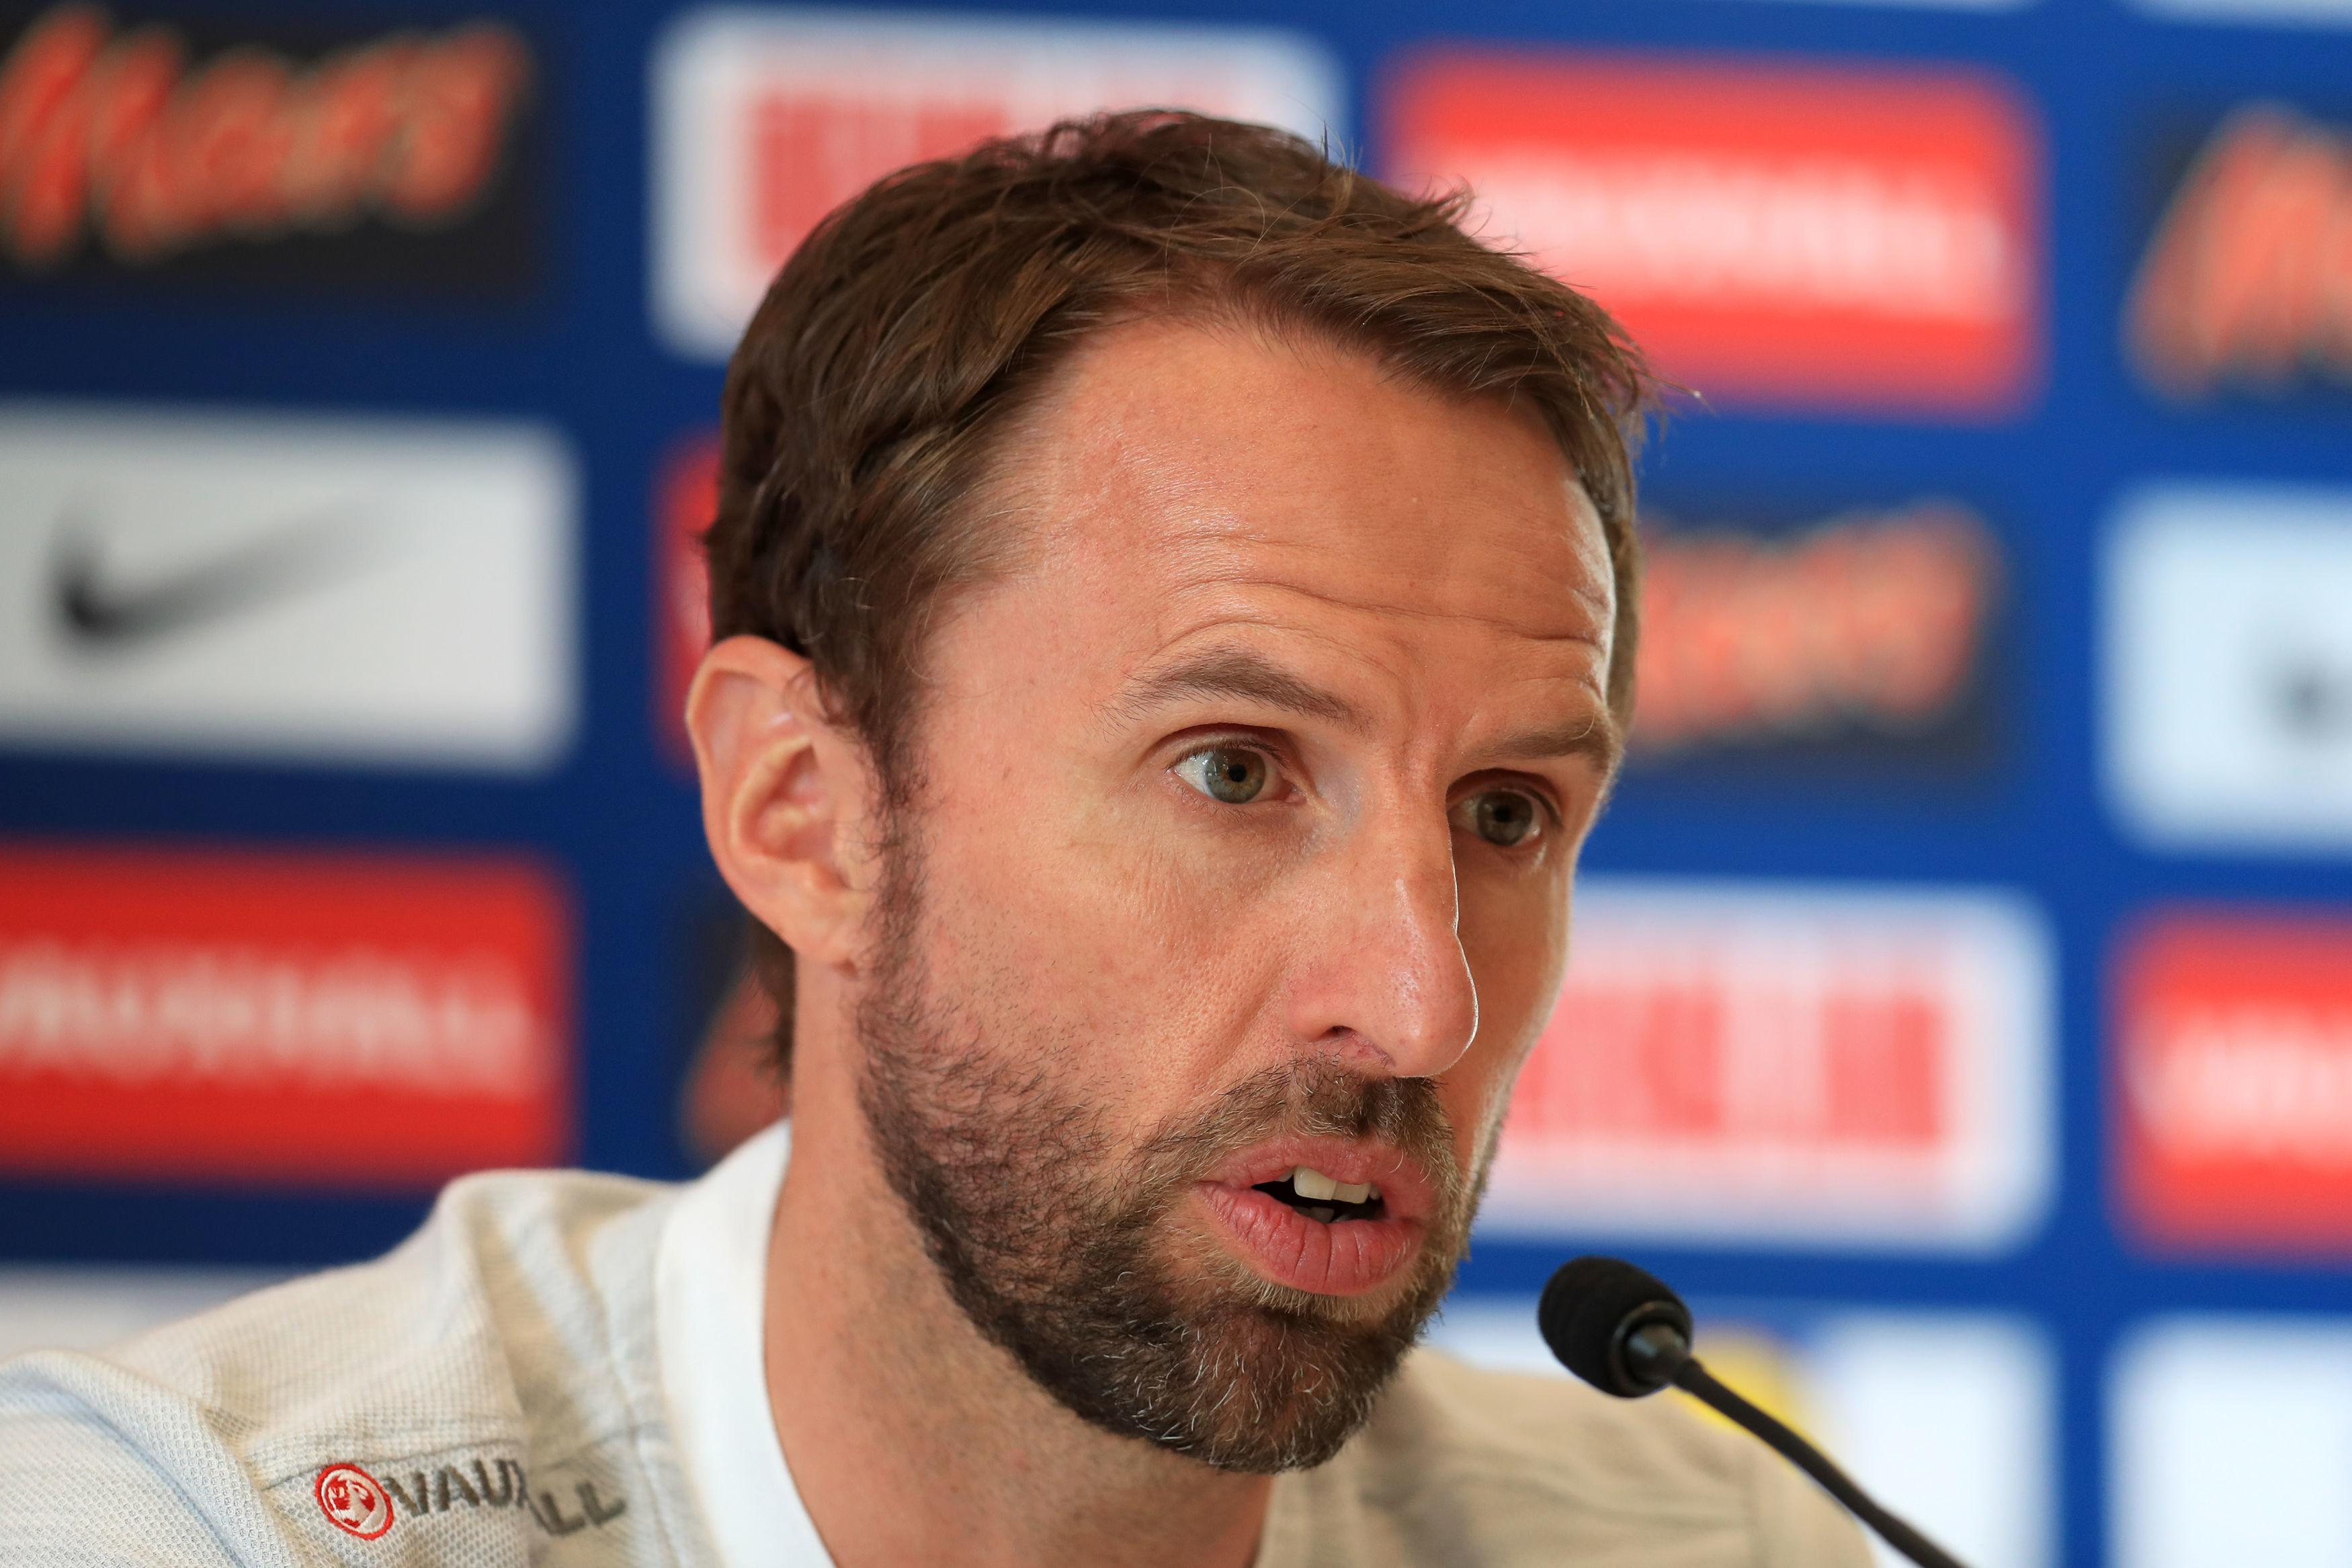 Southgate has advised his players to be vigilant across the pitch